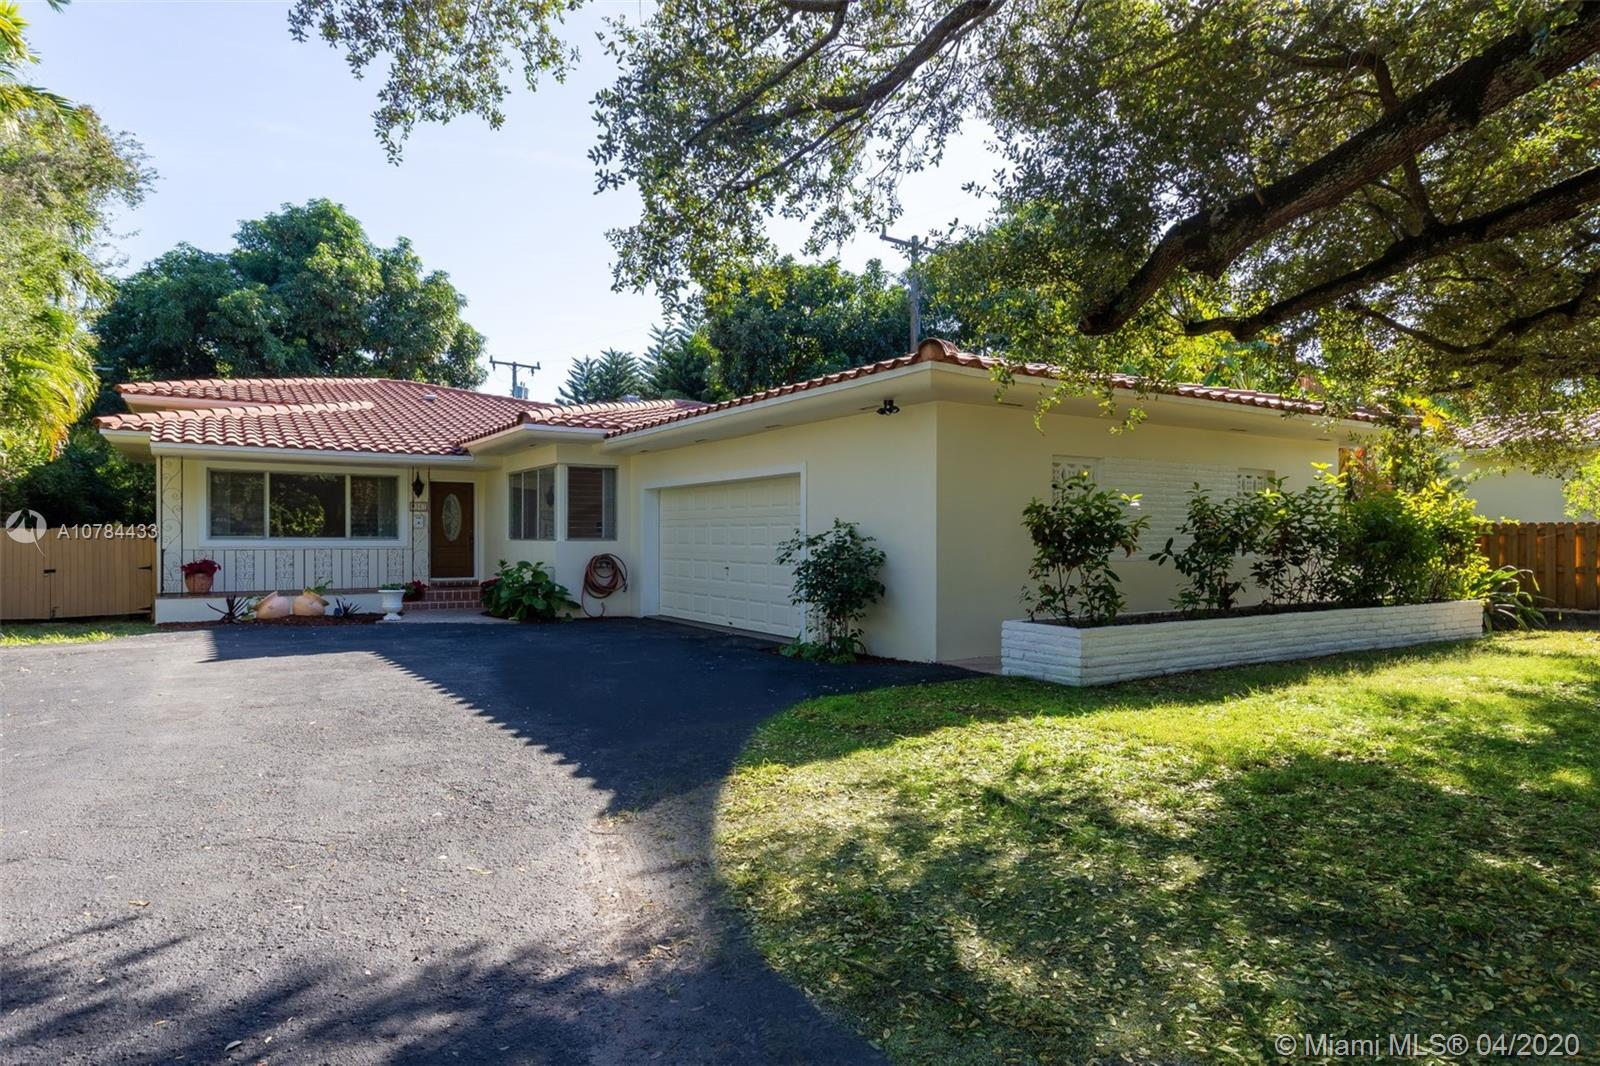 9351 NE 12th Ave, Miami Shores, Florida 33138, 5 Bedrooms Bedrooms, ,4 BathroomsBathrooms,Residential,For Sale,9351 NE 12th Ave,A10784433